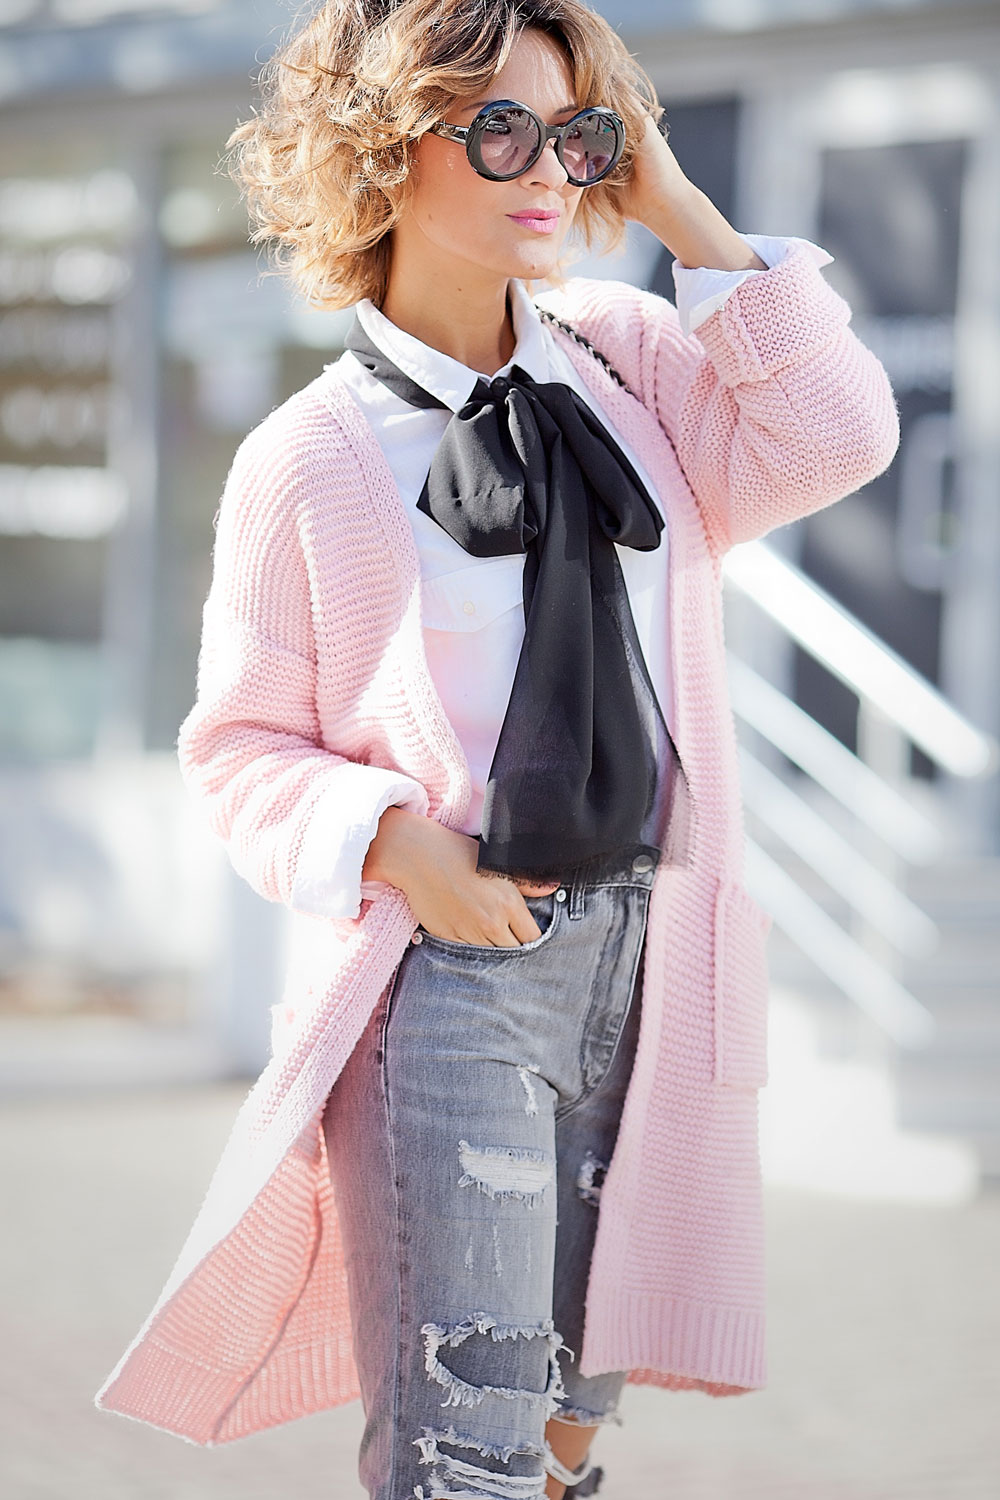 bow+outfit-by-RUNET+street+style+blogger